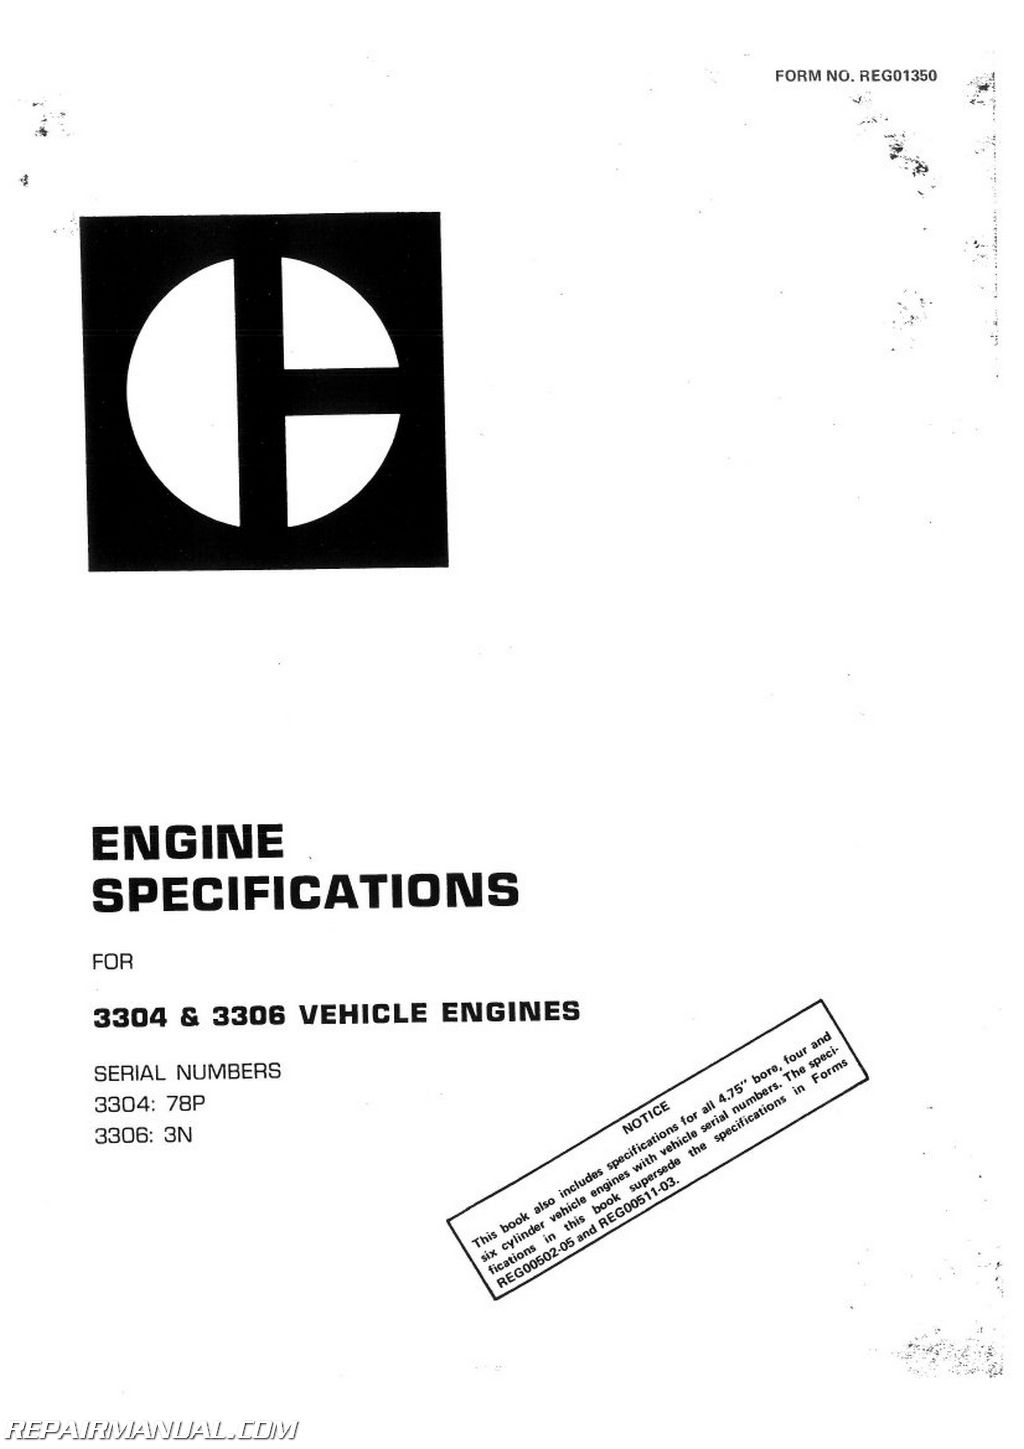 Caterpillar 3406c Fuel System Diagram Wiring Will Be A Thing Cat 3406 Free Download Schematic 3126 Engine Cooling Peec Diagrams Specs